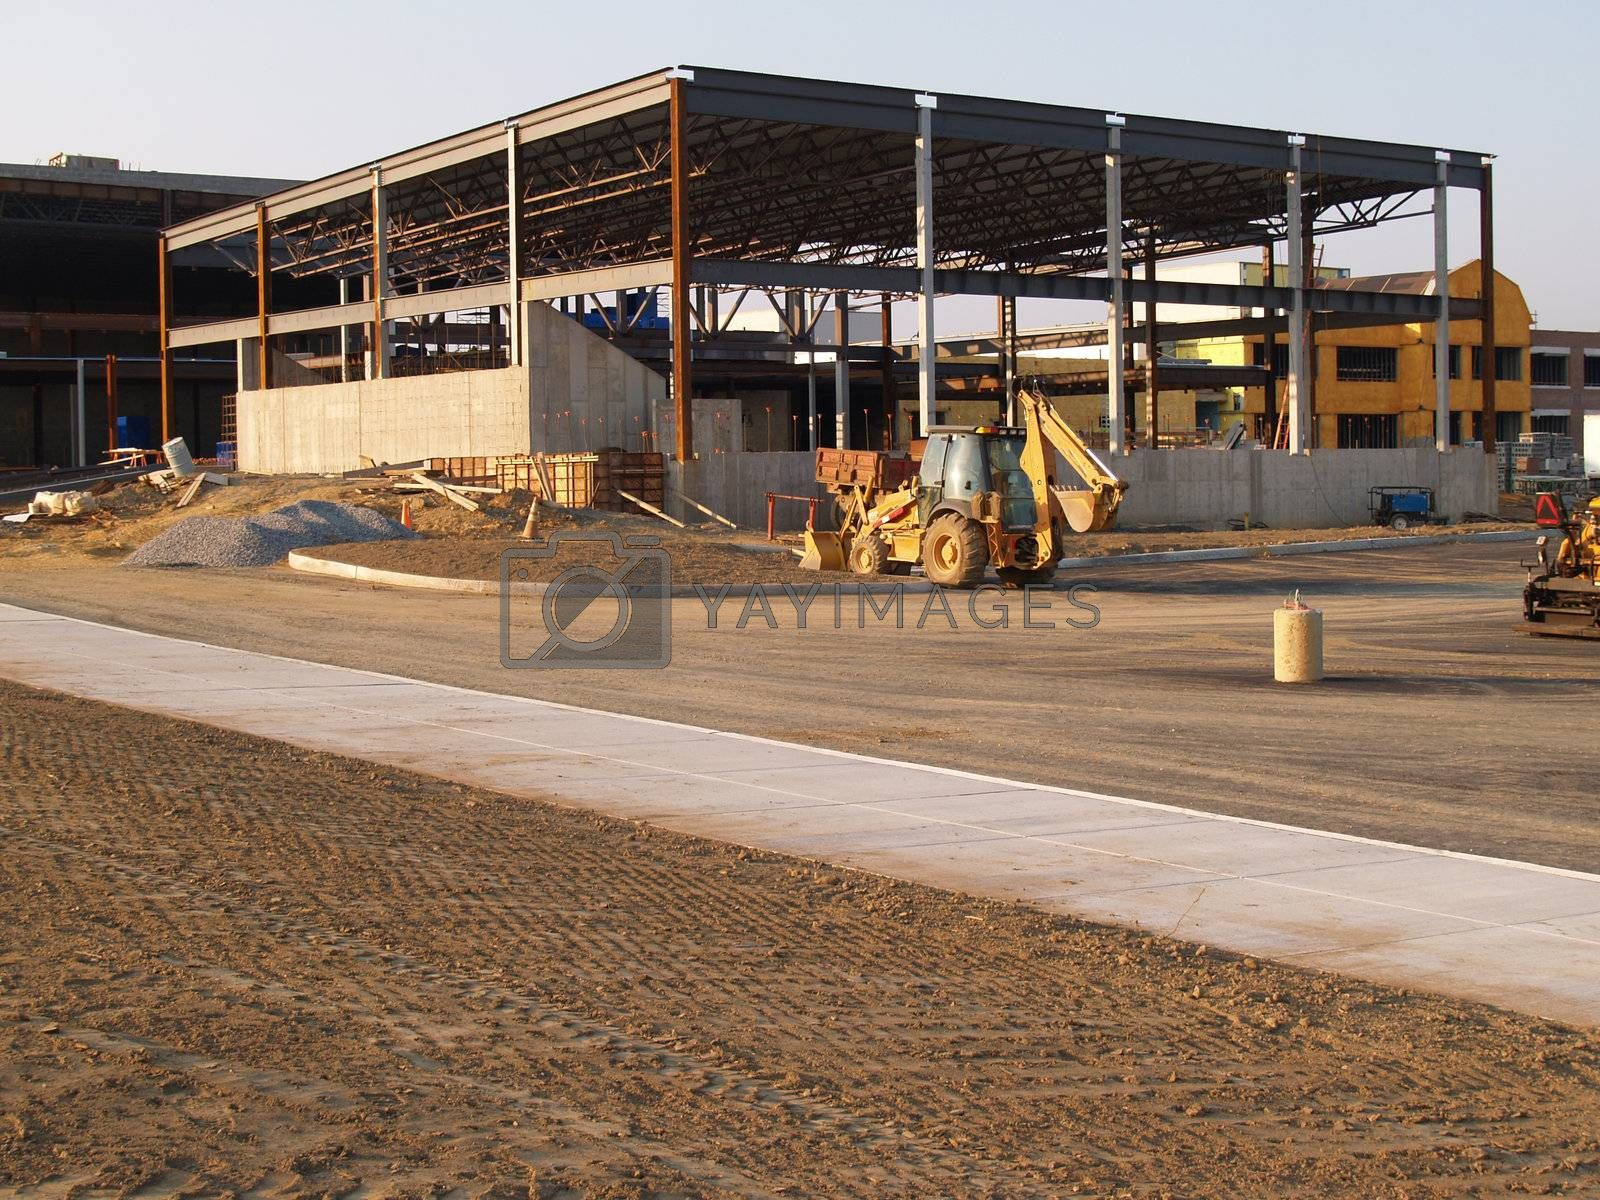 construction site for a new school